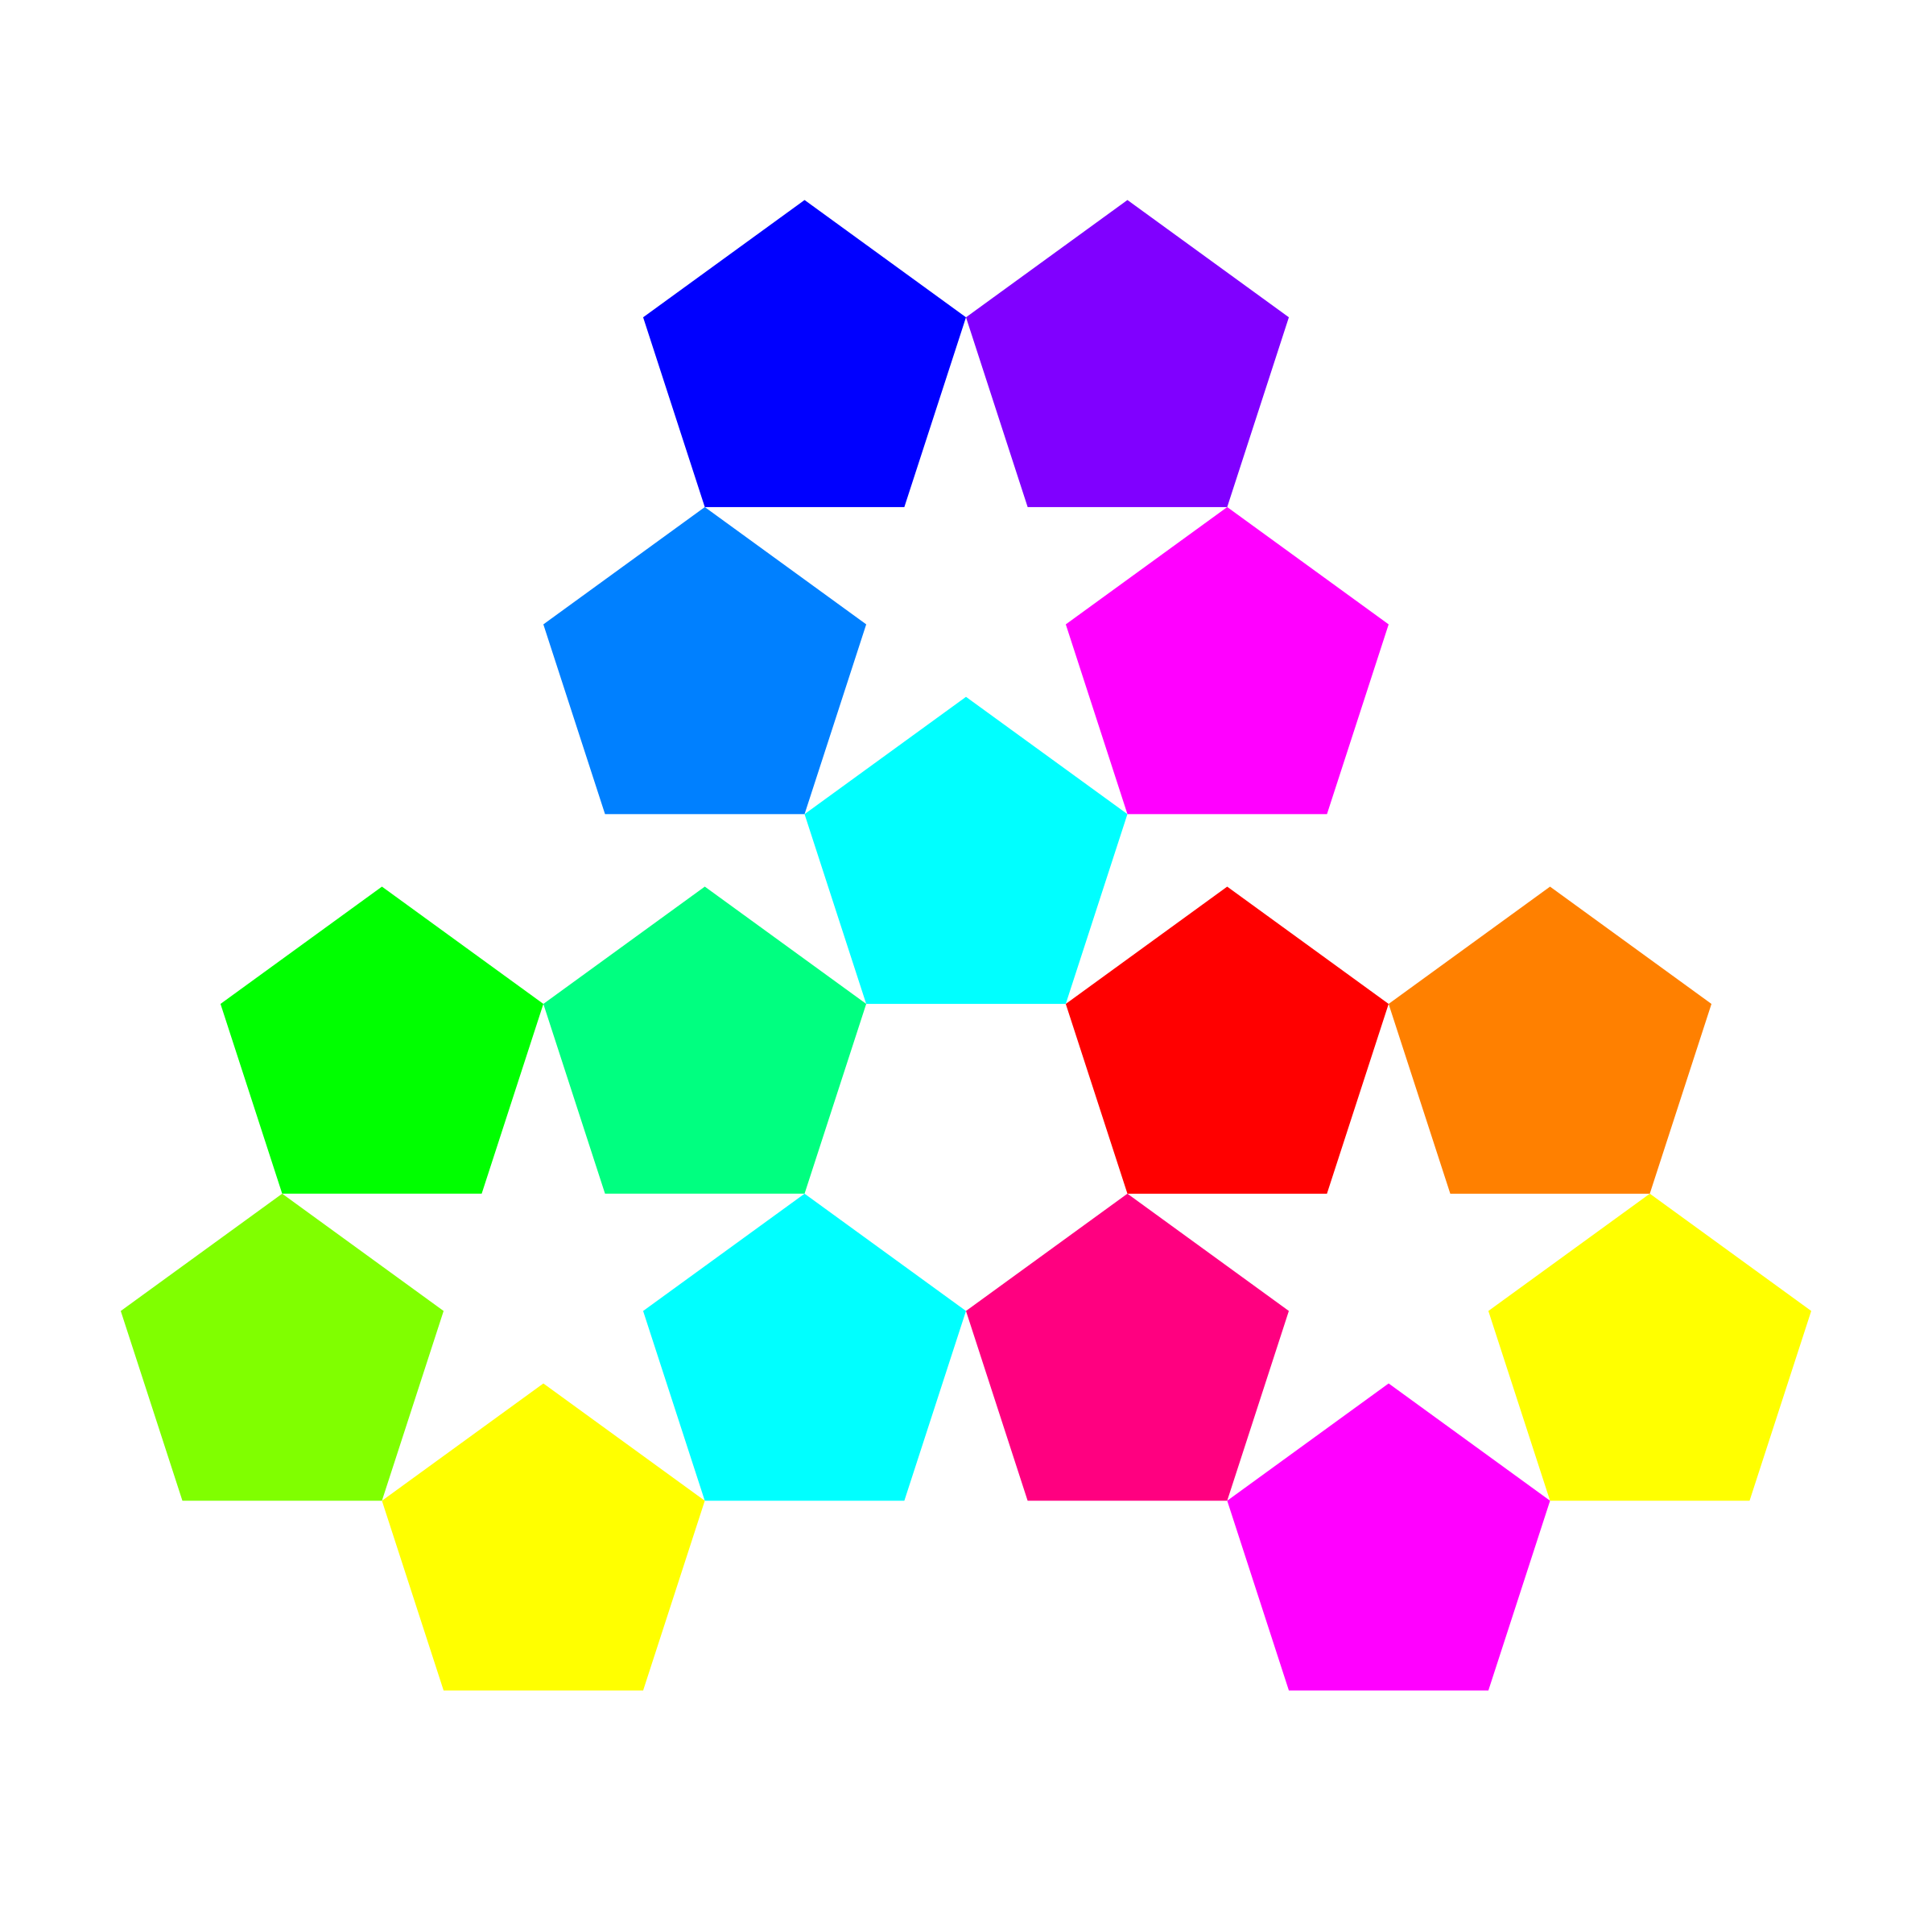 color pentagon inspiration by 10binary